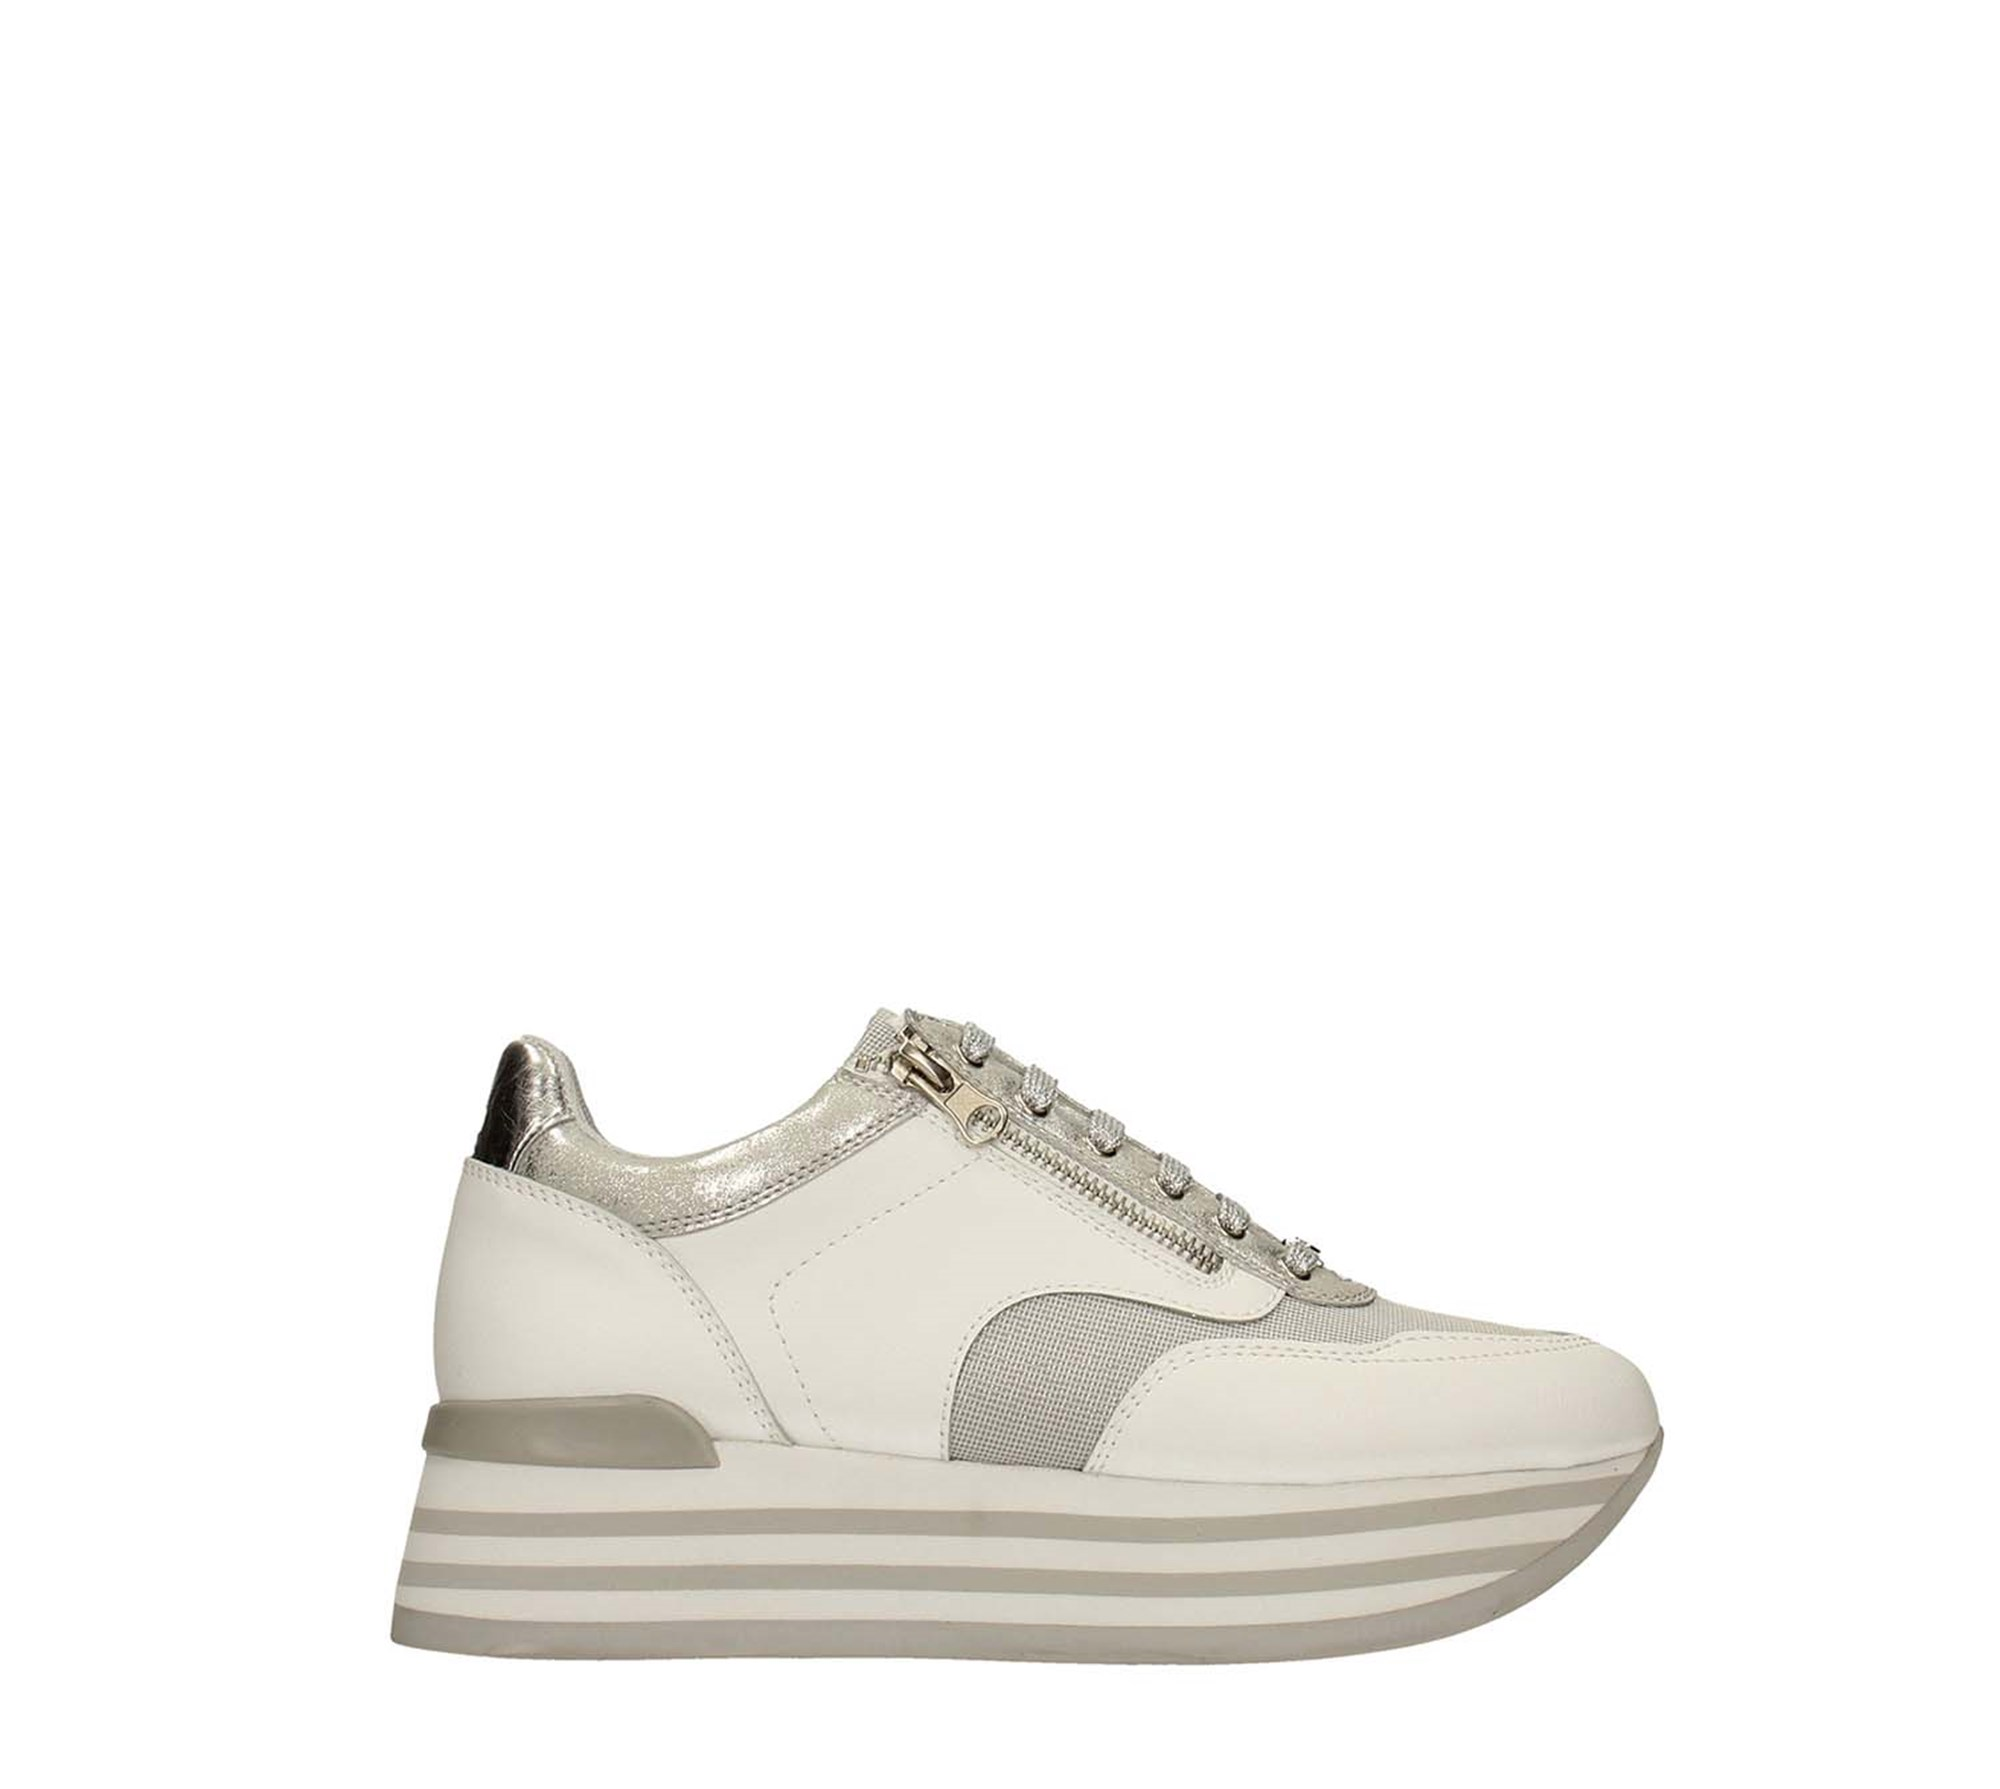 Tata Italia Shoes Woman Sneakers 904189-W